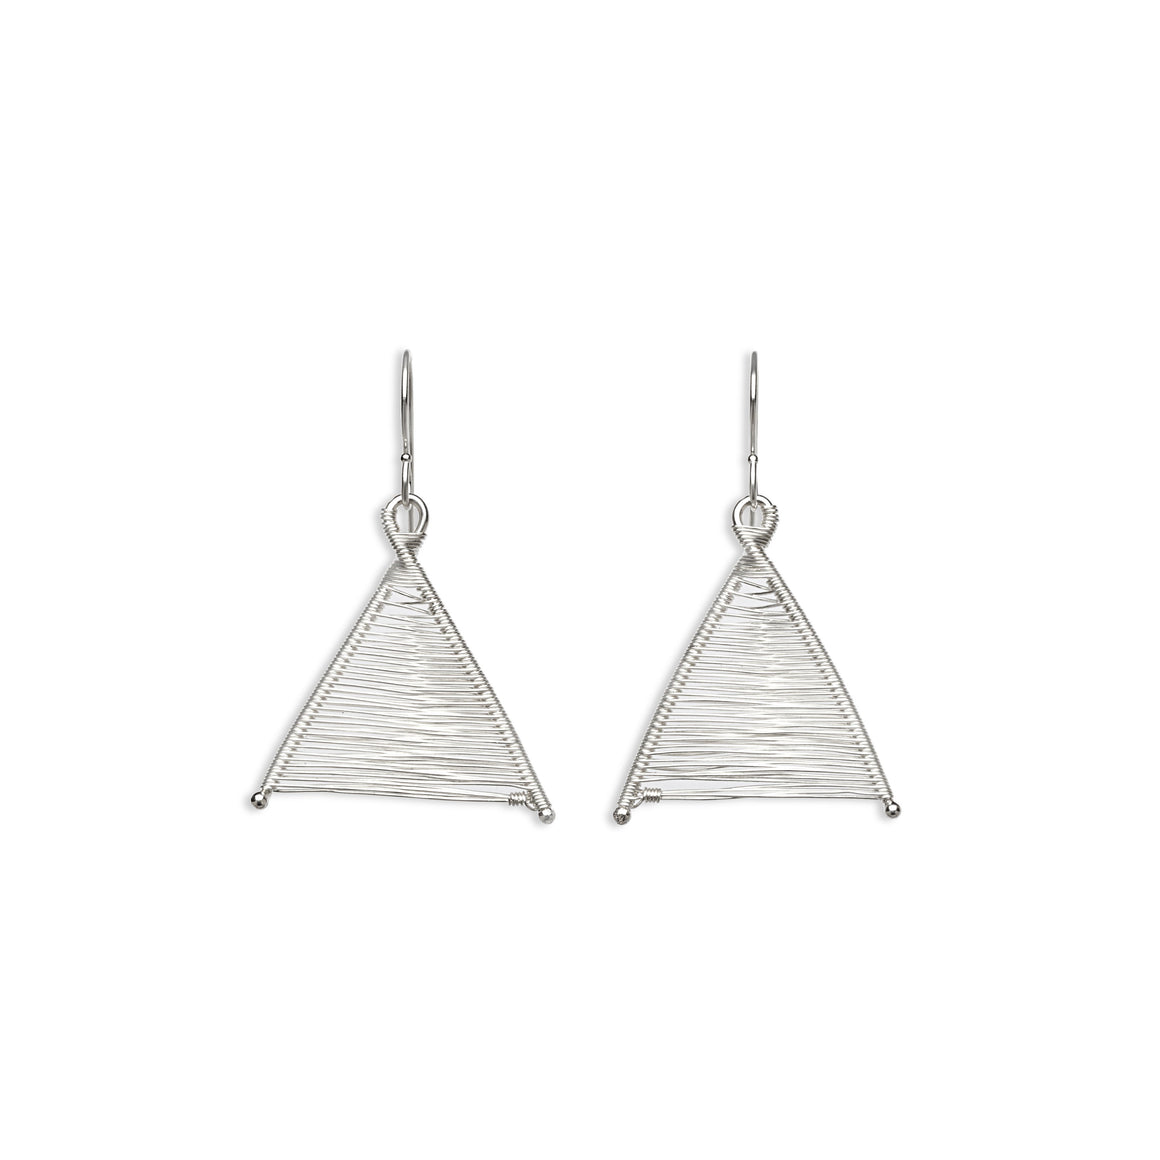 Original Sin Jewelry's Handmade Woven Wishbone Silver Dangle Triangle Earrings